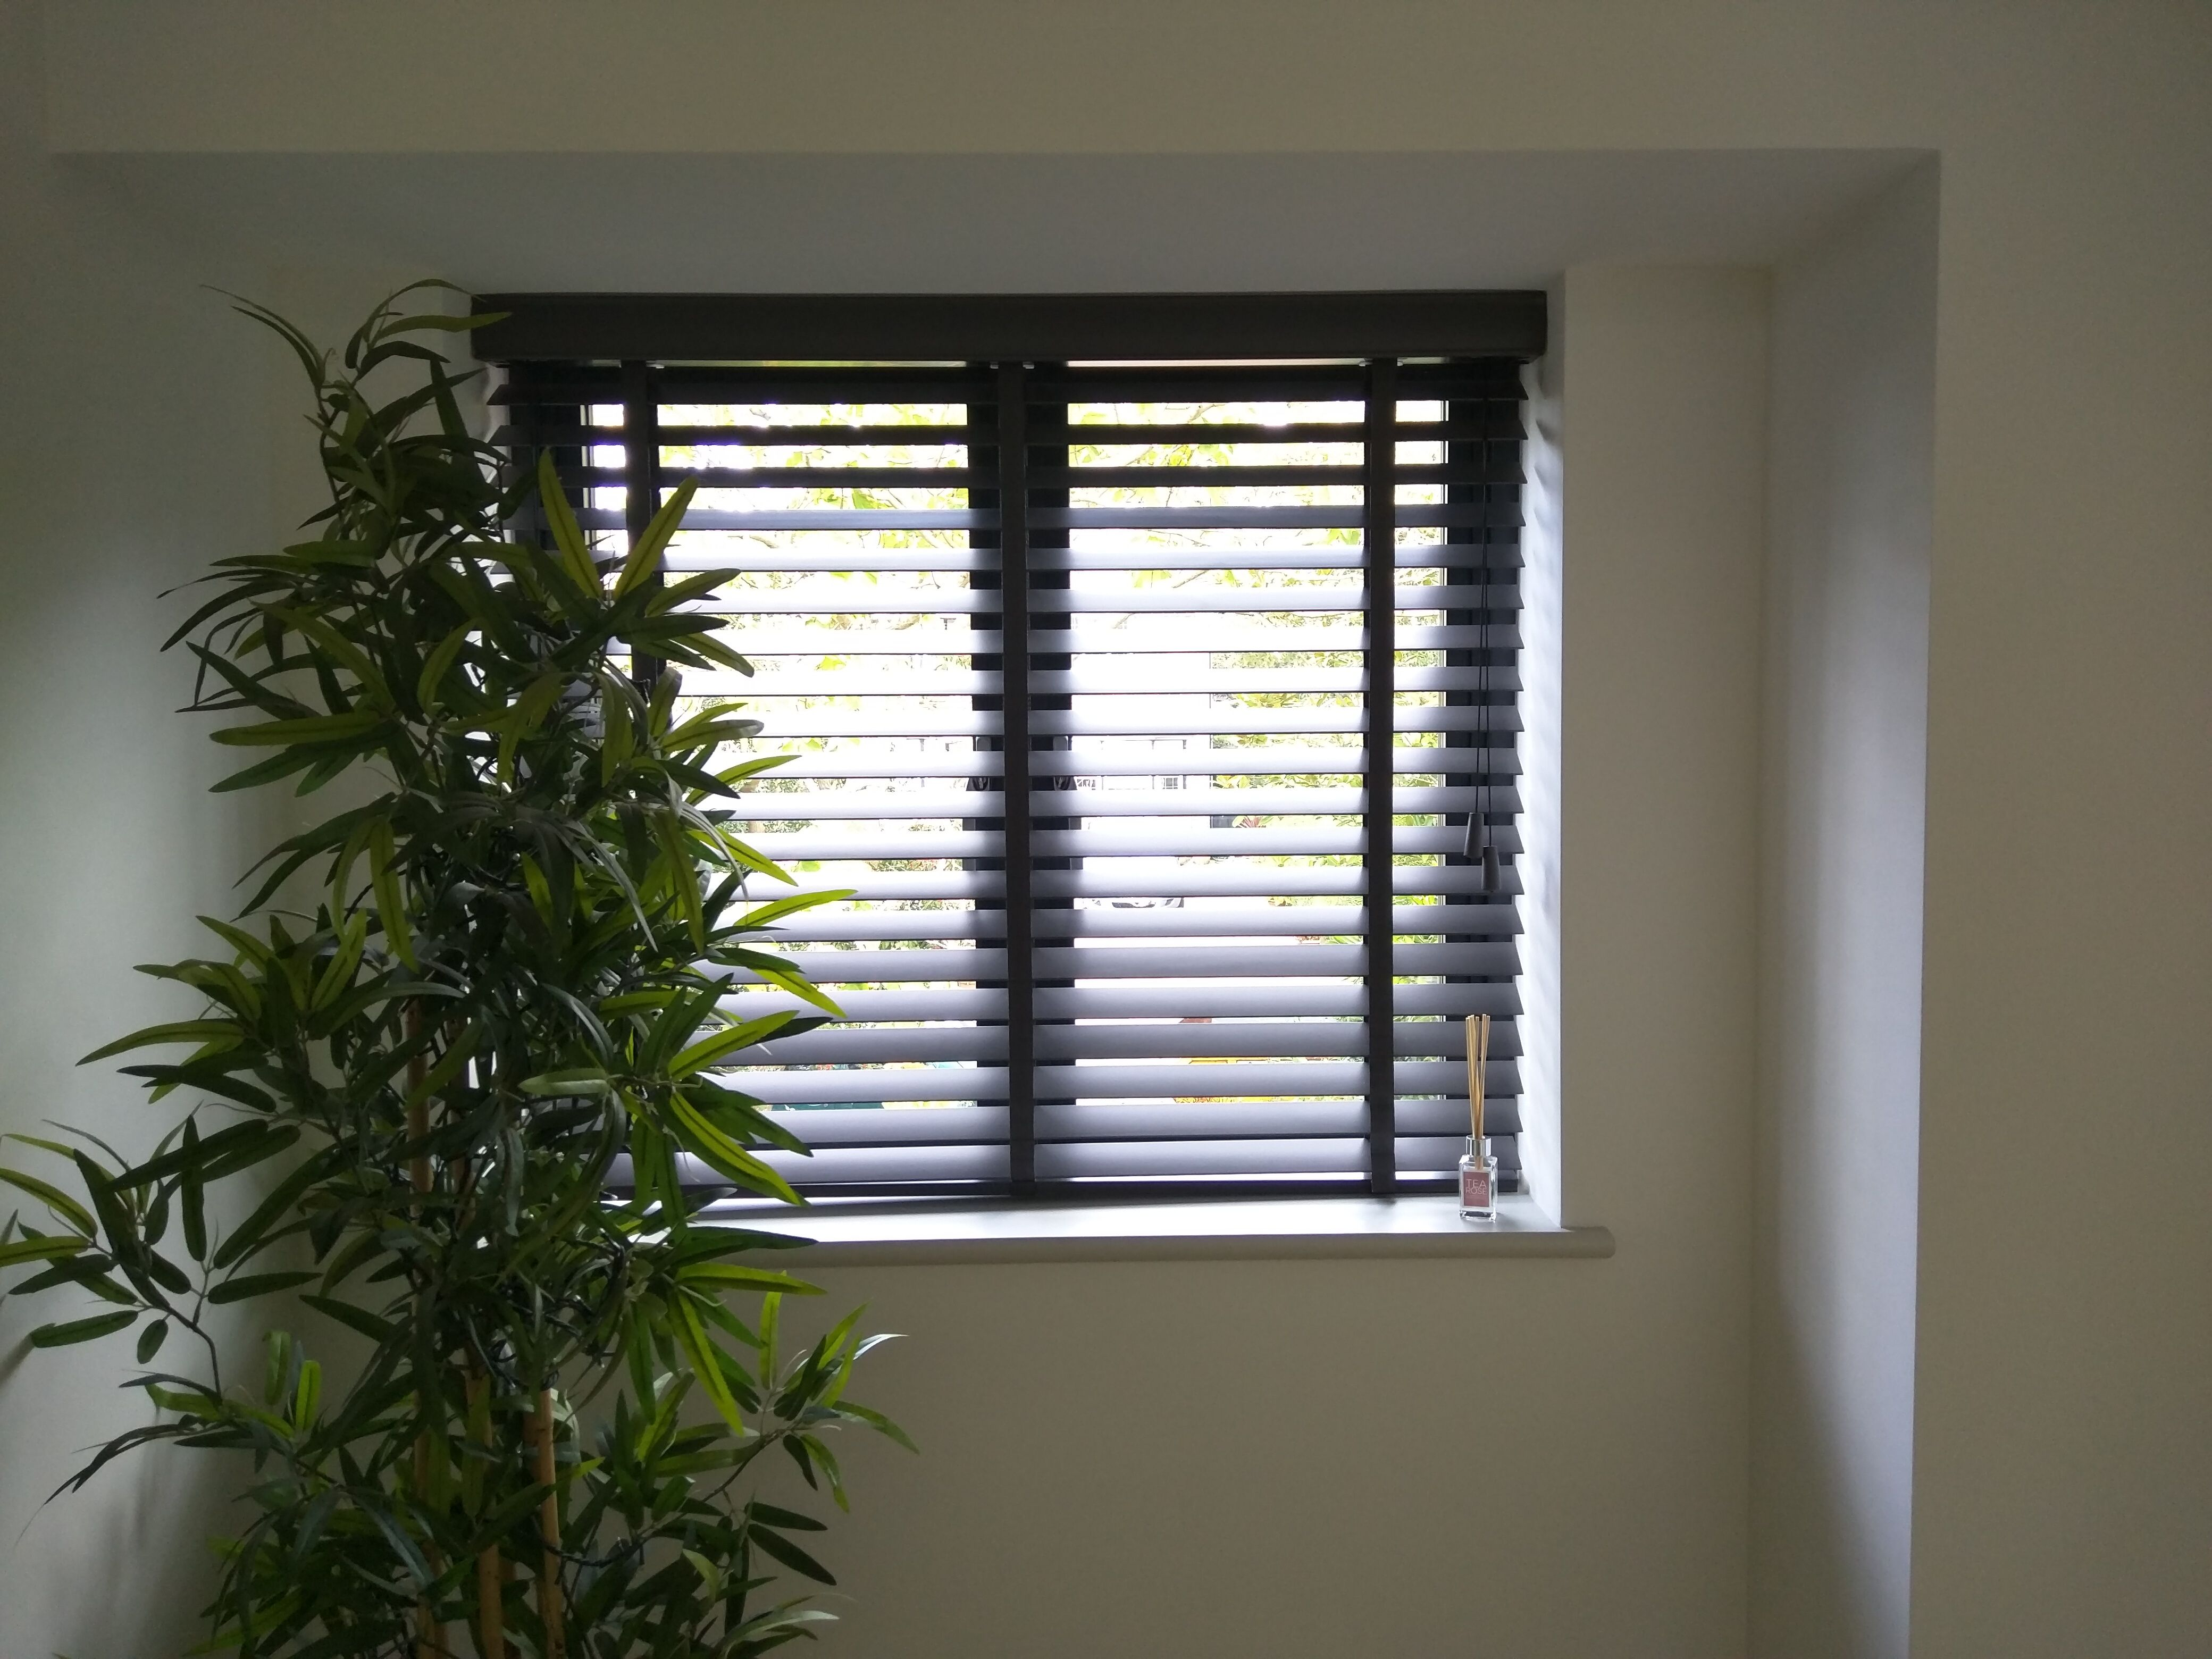 Wood venetian blind with tapes blind fitted inside window recess